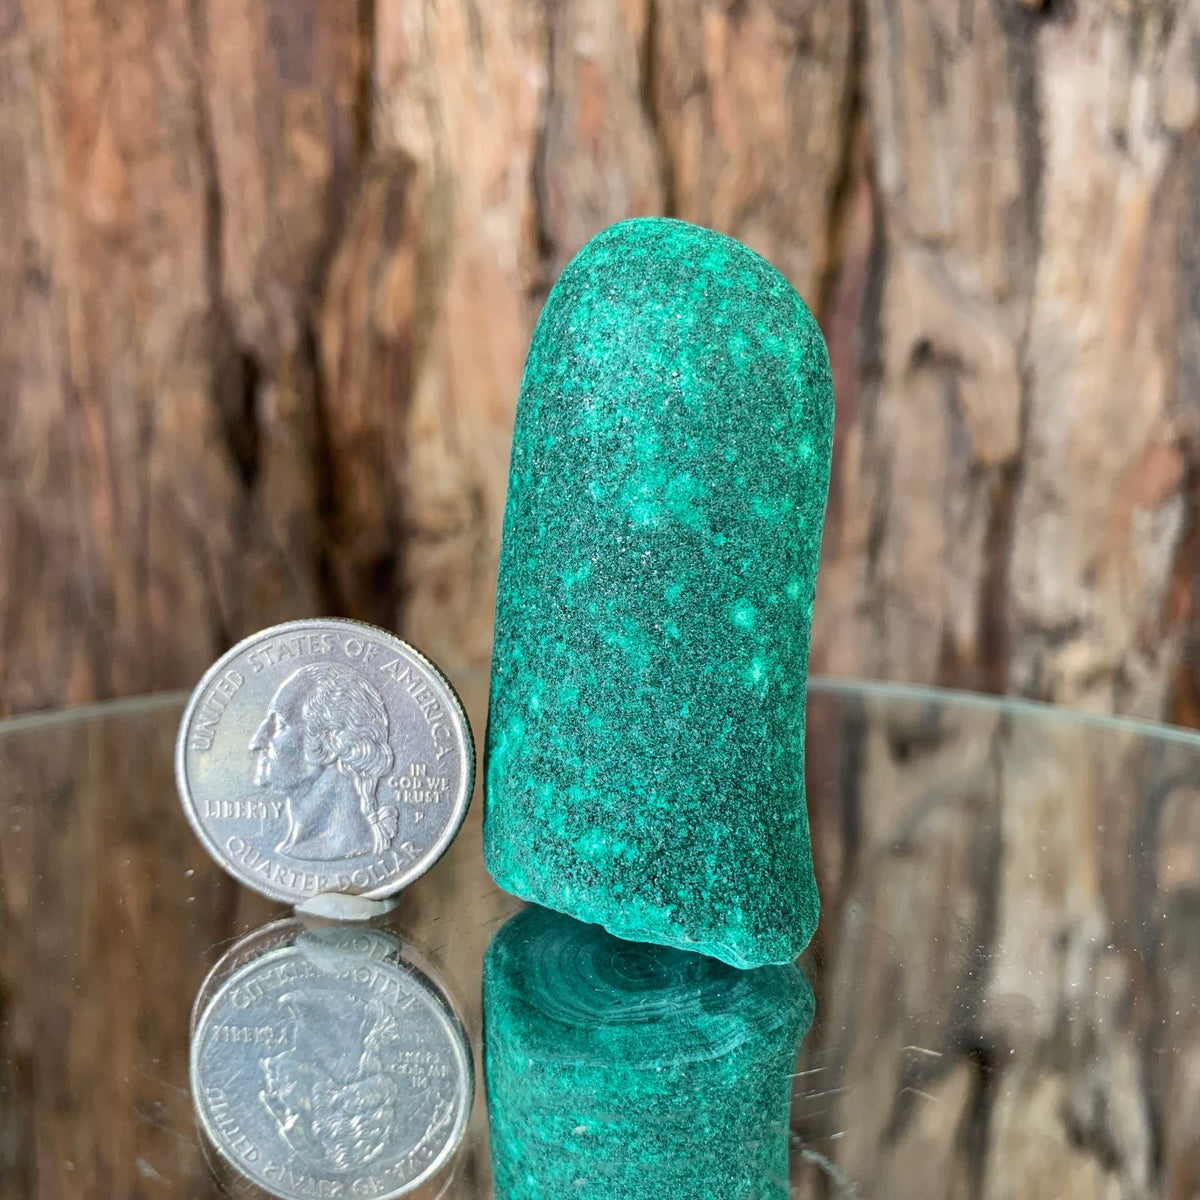 5.7cm 104g Malachite Stalactite from Sepon Mine, Laos